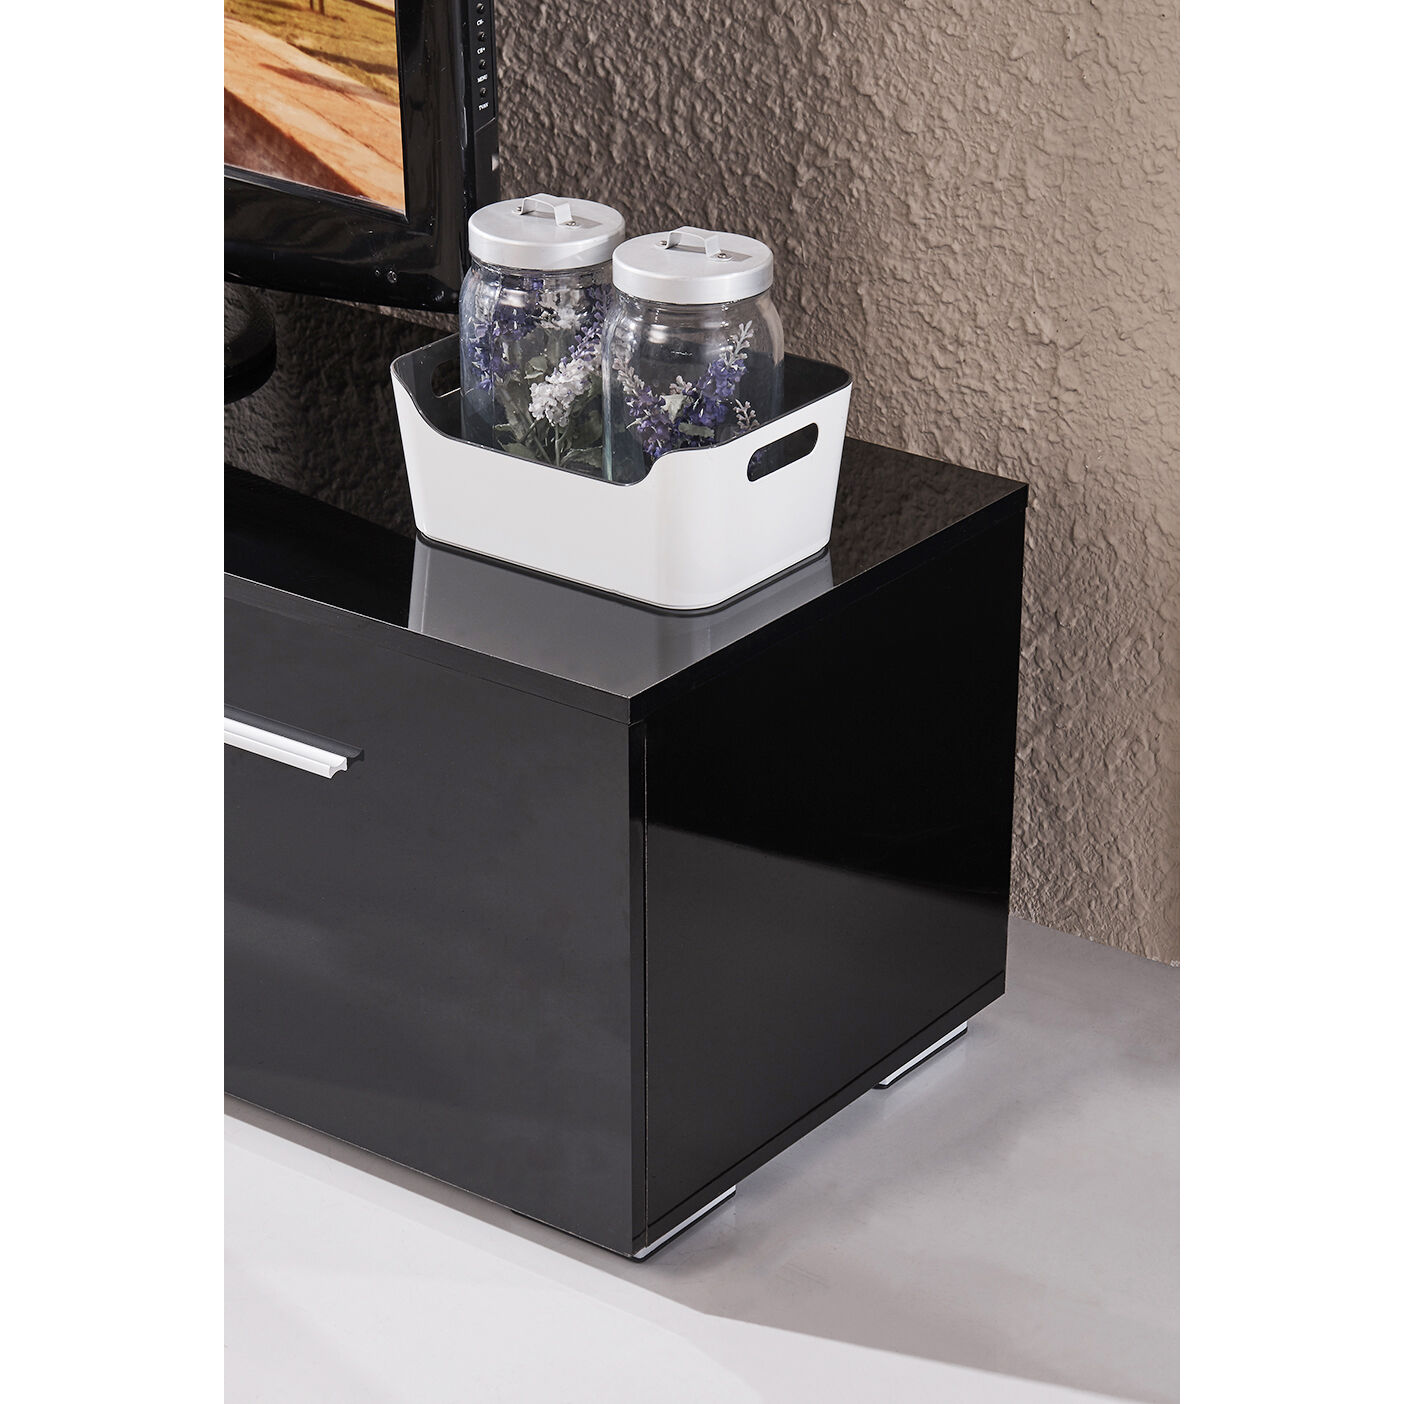 High Gloss TV Stand Unit Cabinet Console Furniturew led Shelves 2